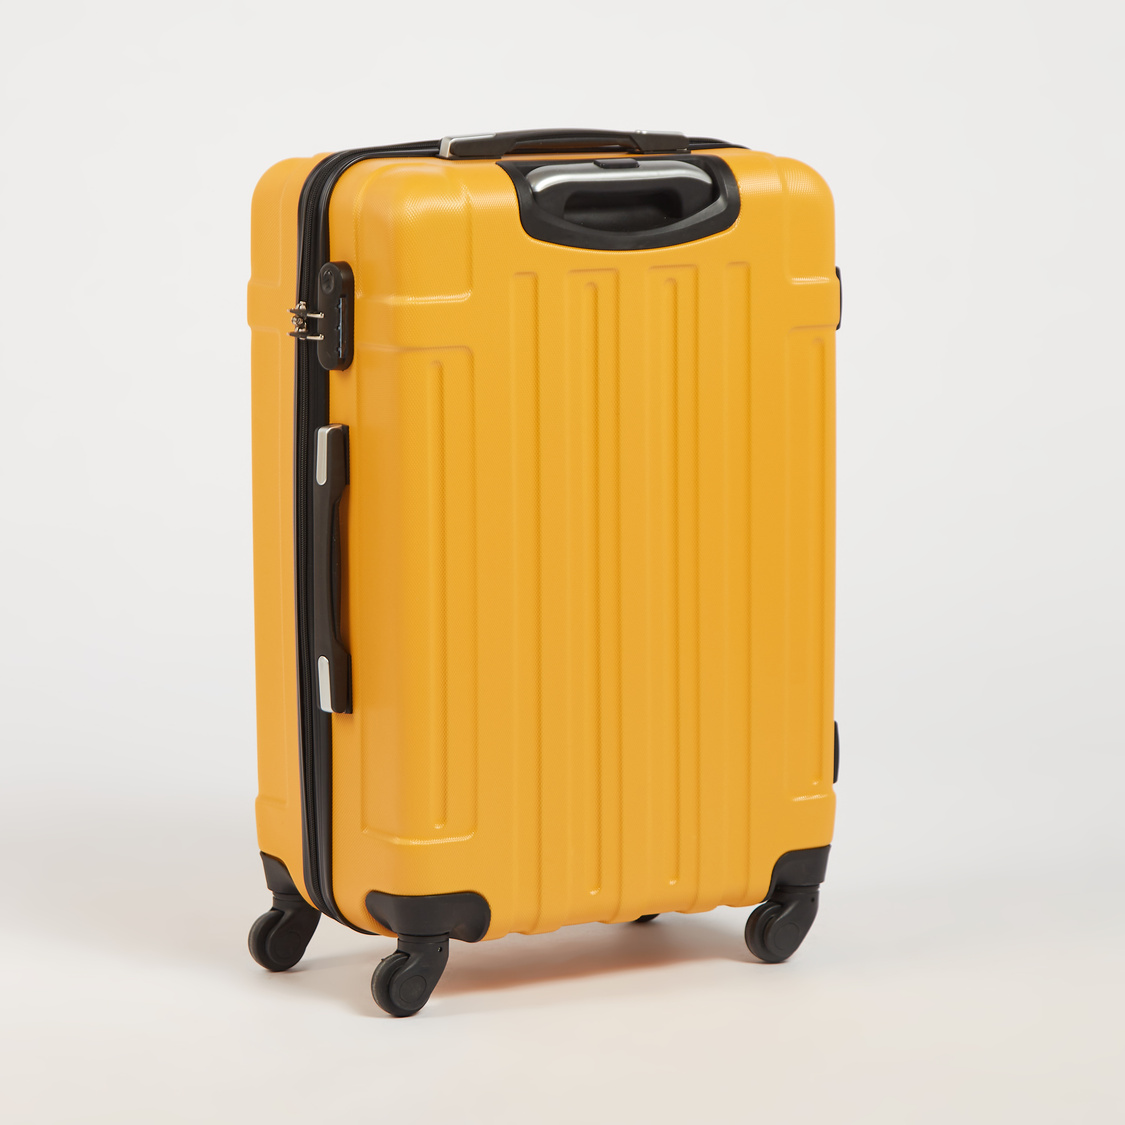 Textured Hardside Trolley Suitcase with Retractable Handle